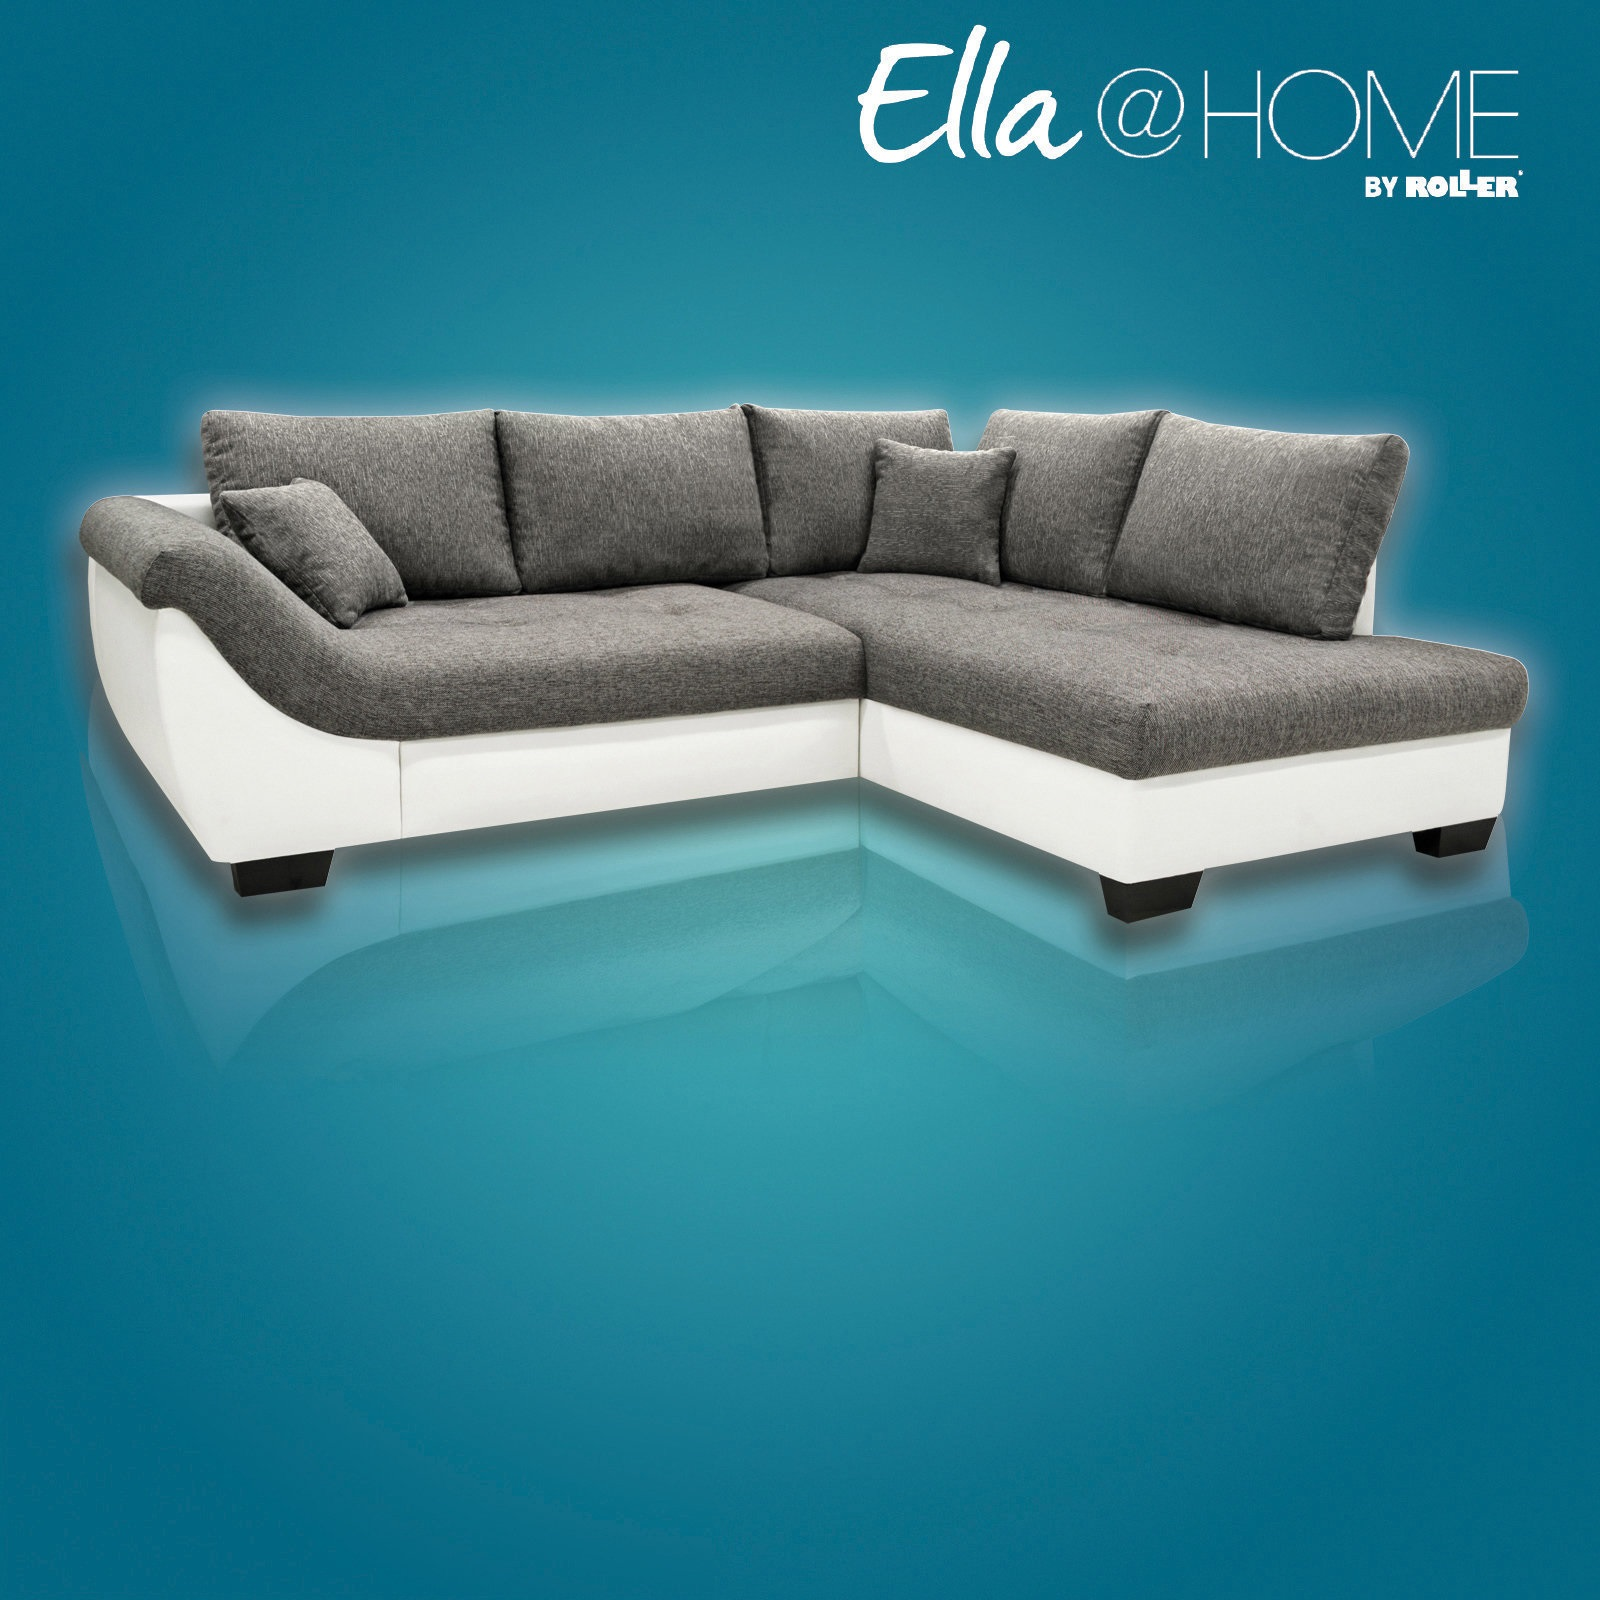 16 sparen ecksofa nizza von ella home in wei anthrazit mit bettfunktion nur 499 99. Black Bedroom Furniture Sets. Home Design Ideas